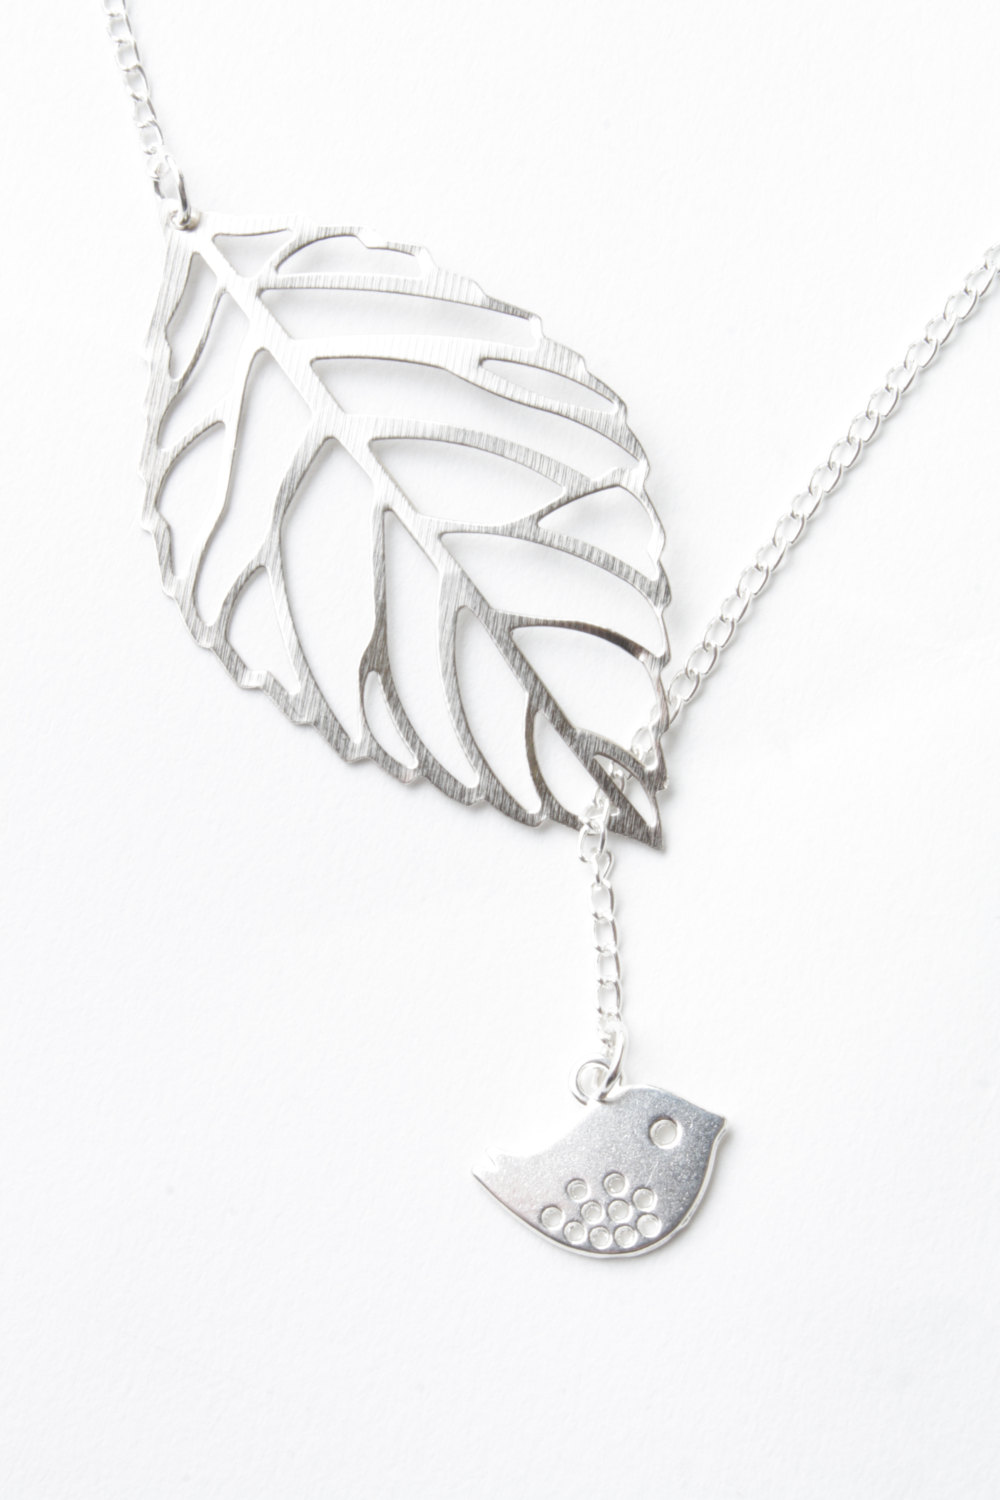 Bird necklace leaf necklace bird and leaf necklace silver bird necklace leaf necklace bird and leaf necklace silver leaf silver bird bird jewelry lariat leaf jewelry delicate necklace aloadofball Image collections